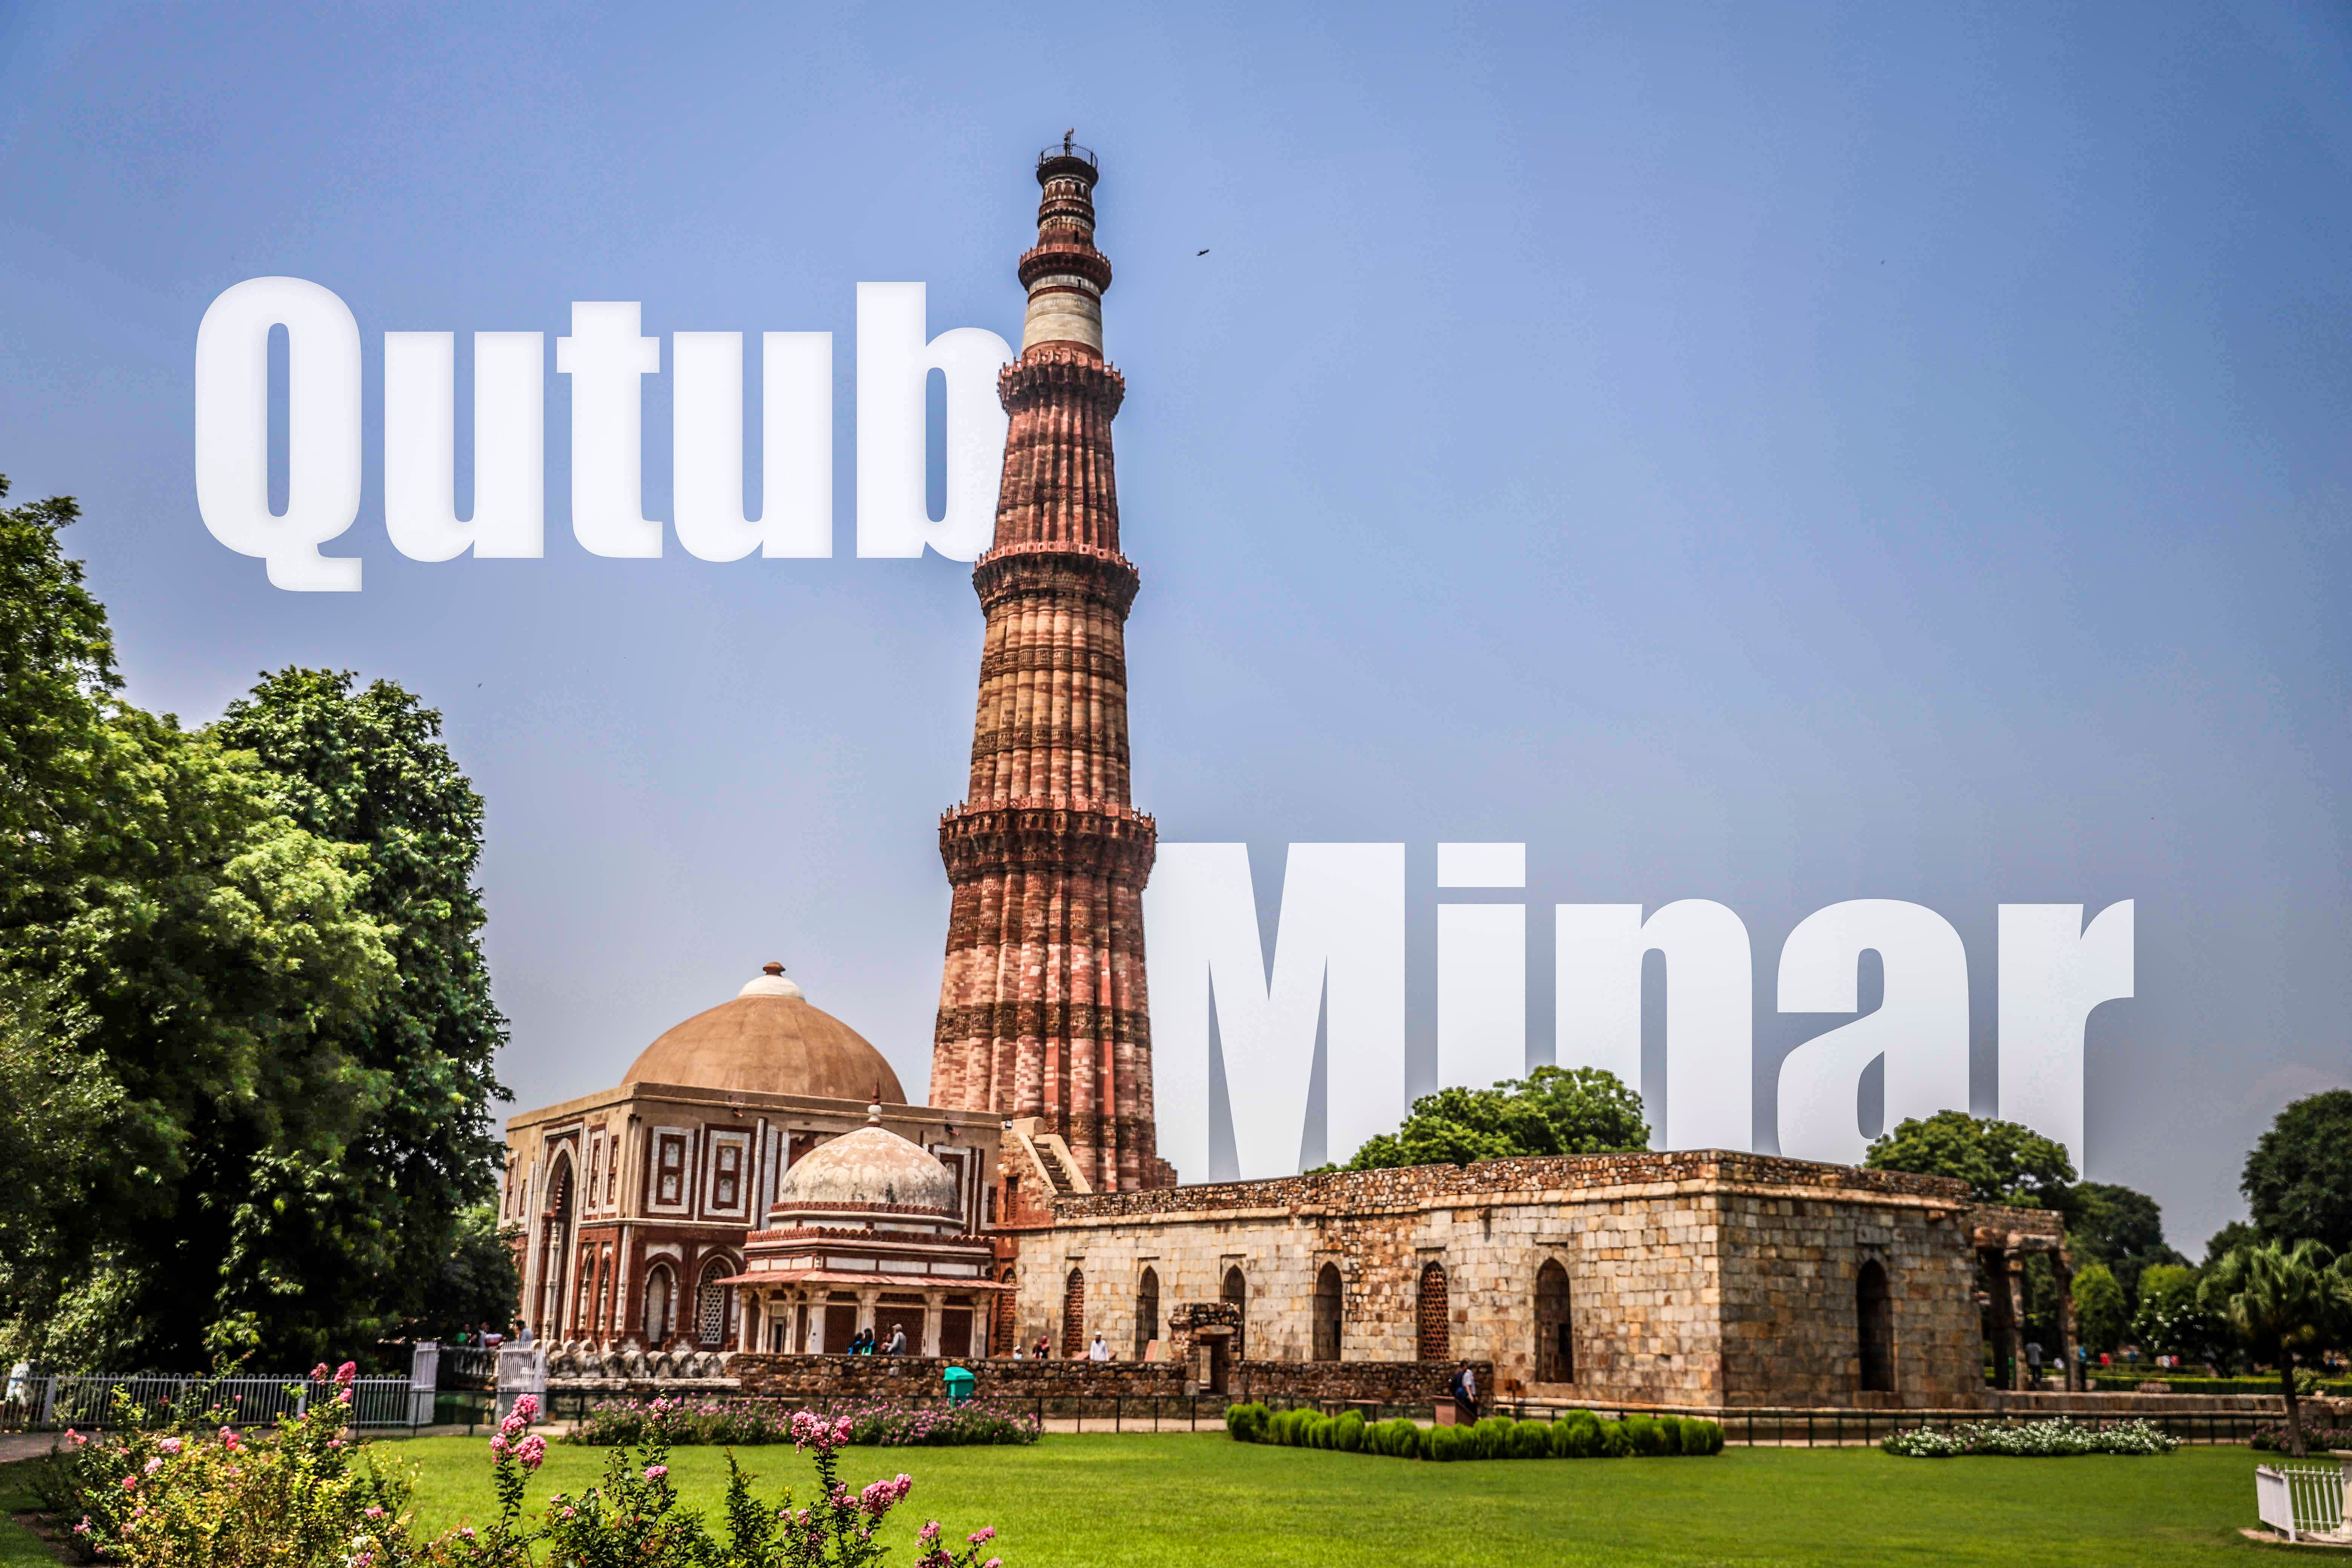 Qutub Minar- The Majestic Victory Tower